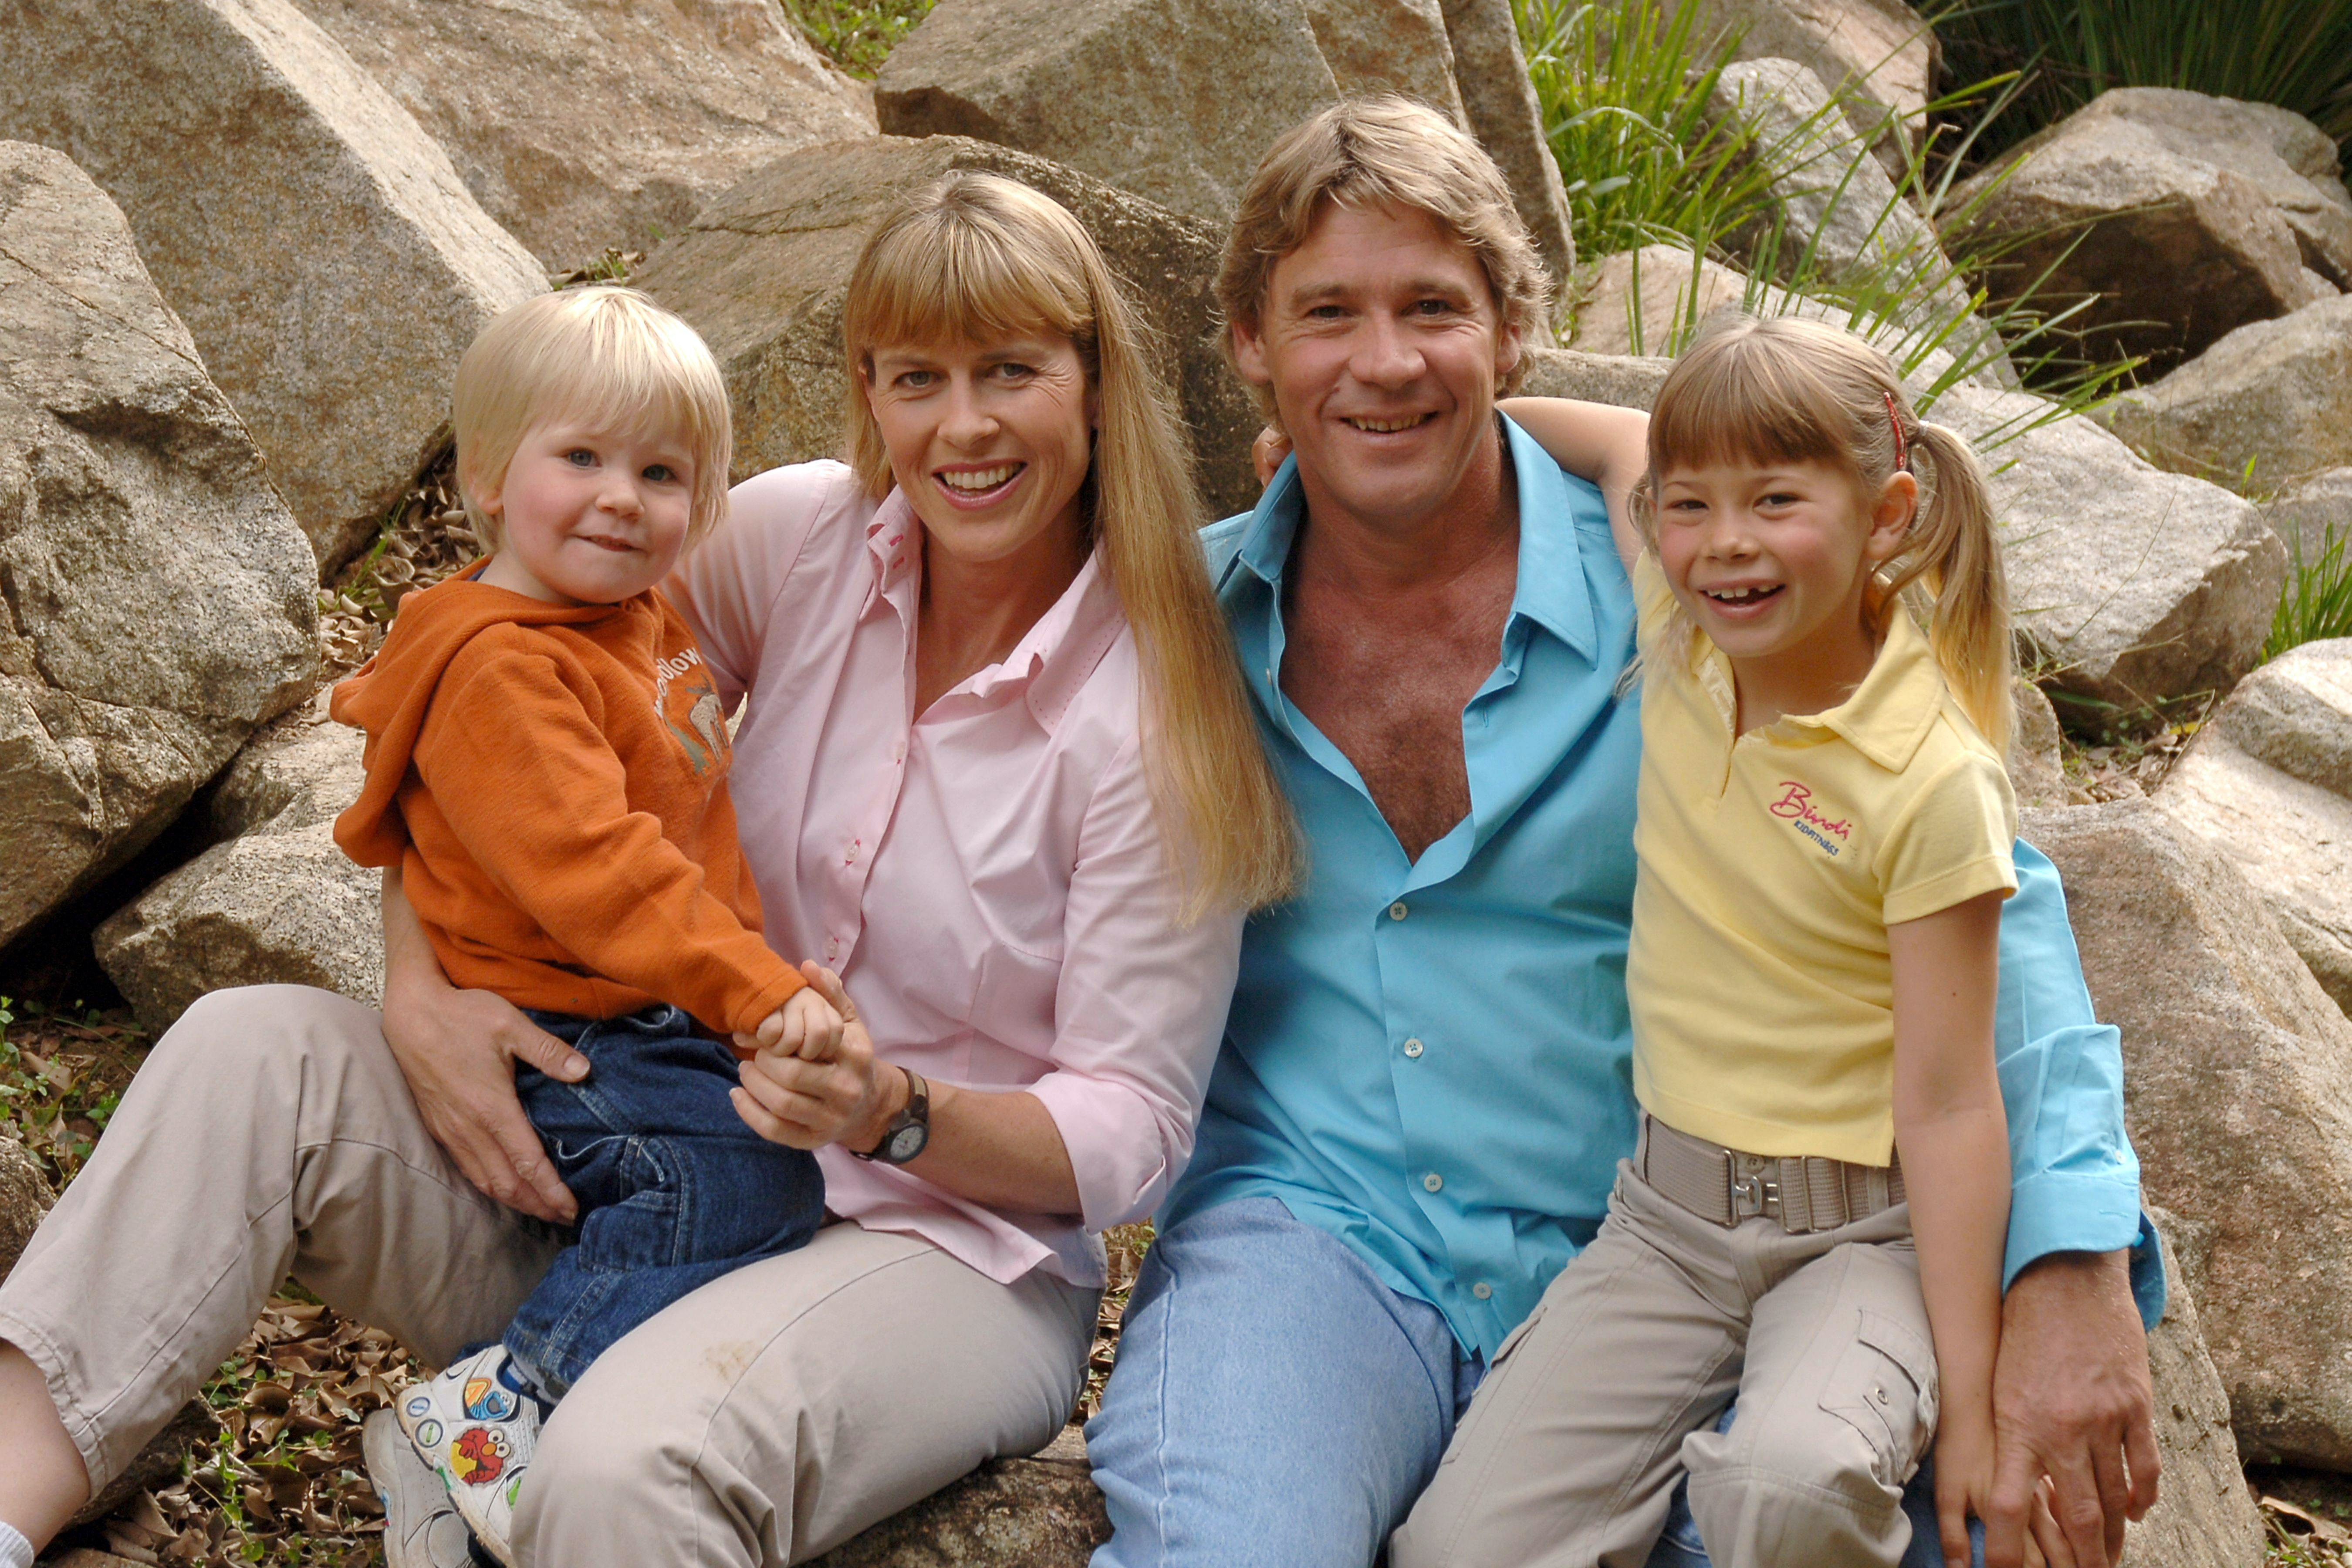 Steve Irwin poses with his family at Australia Zoo June 19, 2006 in Beerwah, Australia.Photos: Getty Images